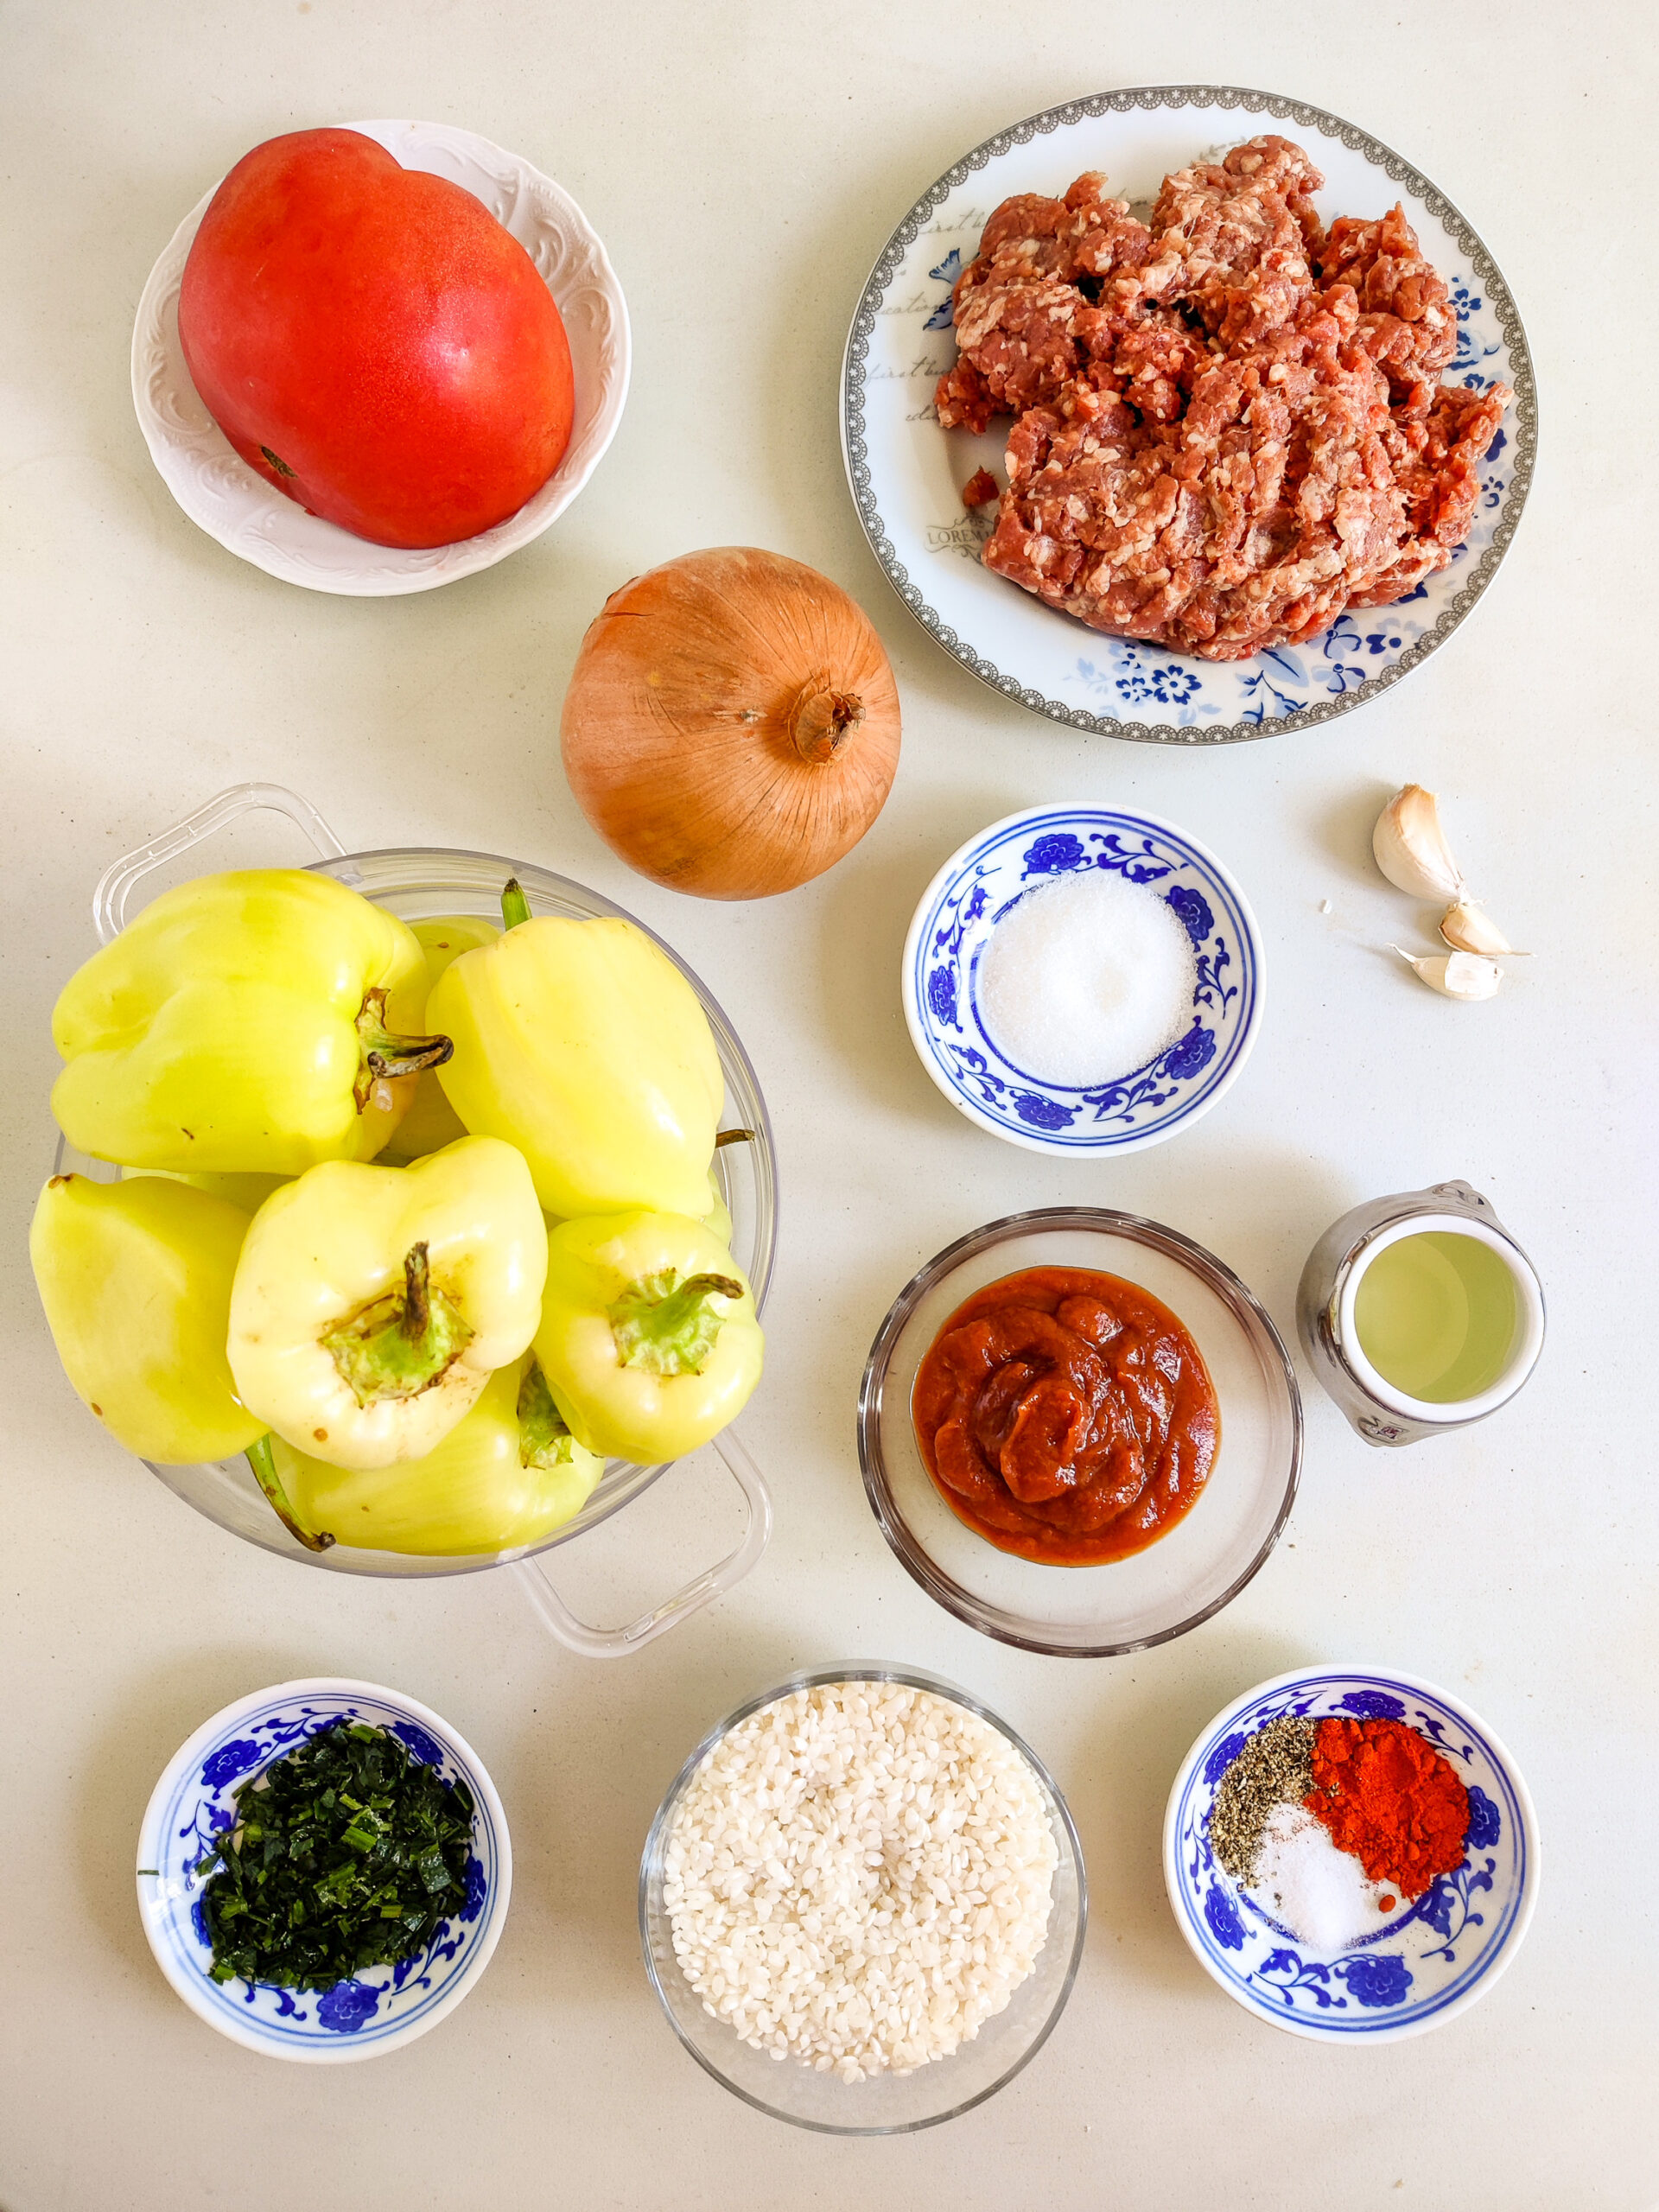 Overhead photo of ingredients for stuffed peppers.